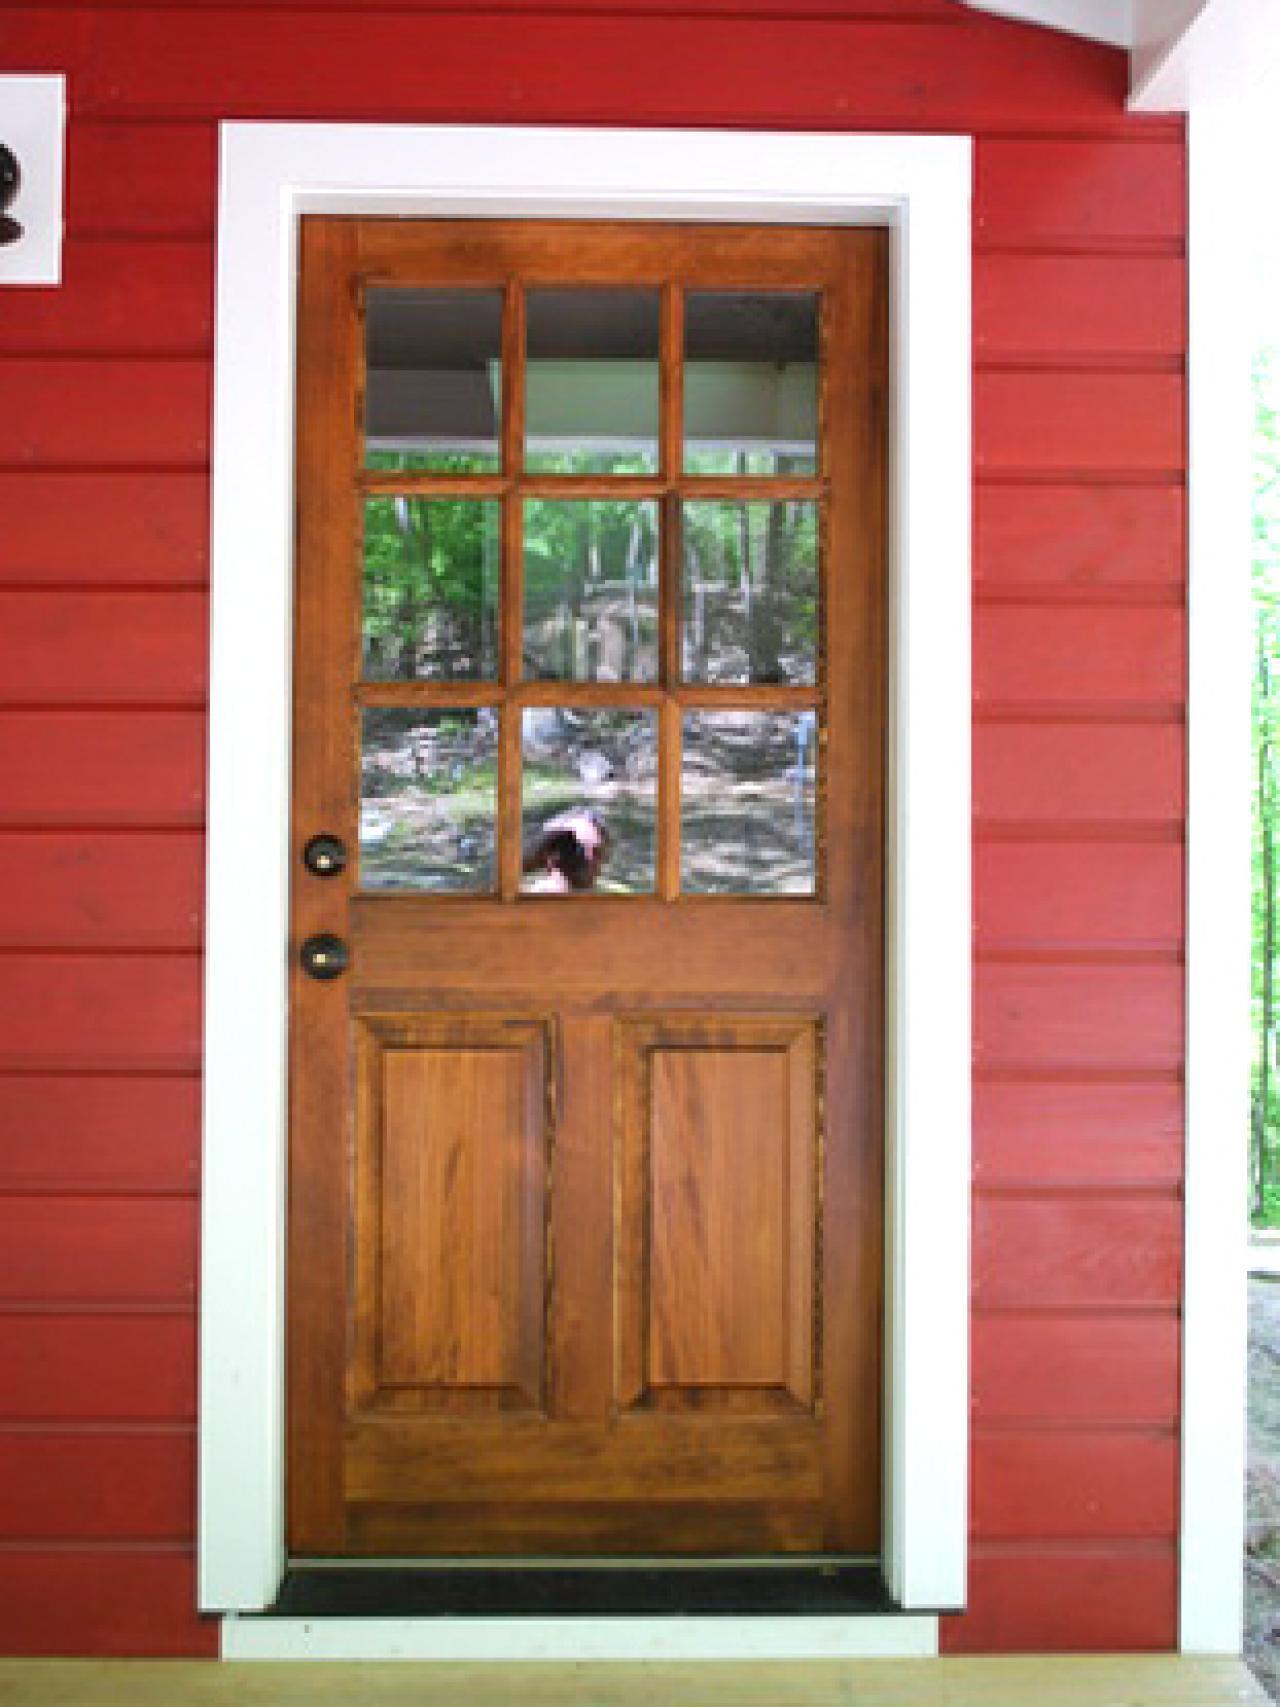 Installing exterior doors - How To Fix Common Problems On Entry Doors